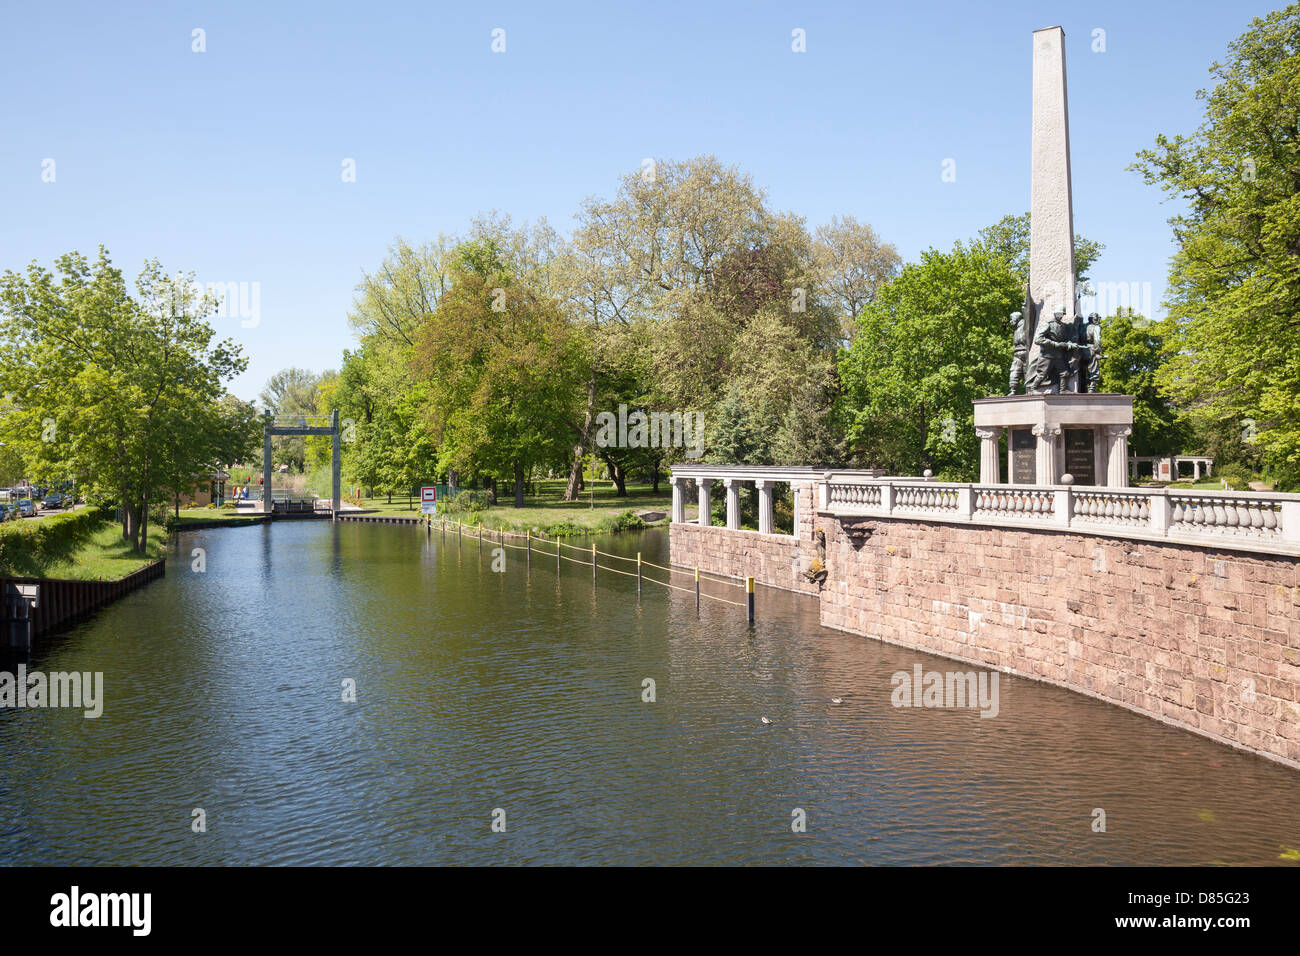 Stadt Canal and Soviet Memorial, Brandenburg an der Havel, Germany - Stock Image